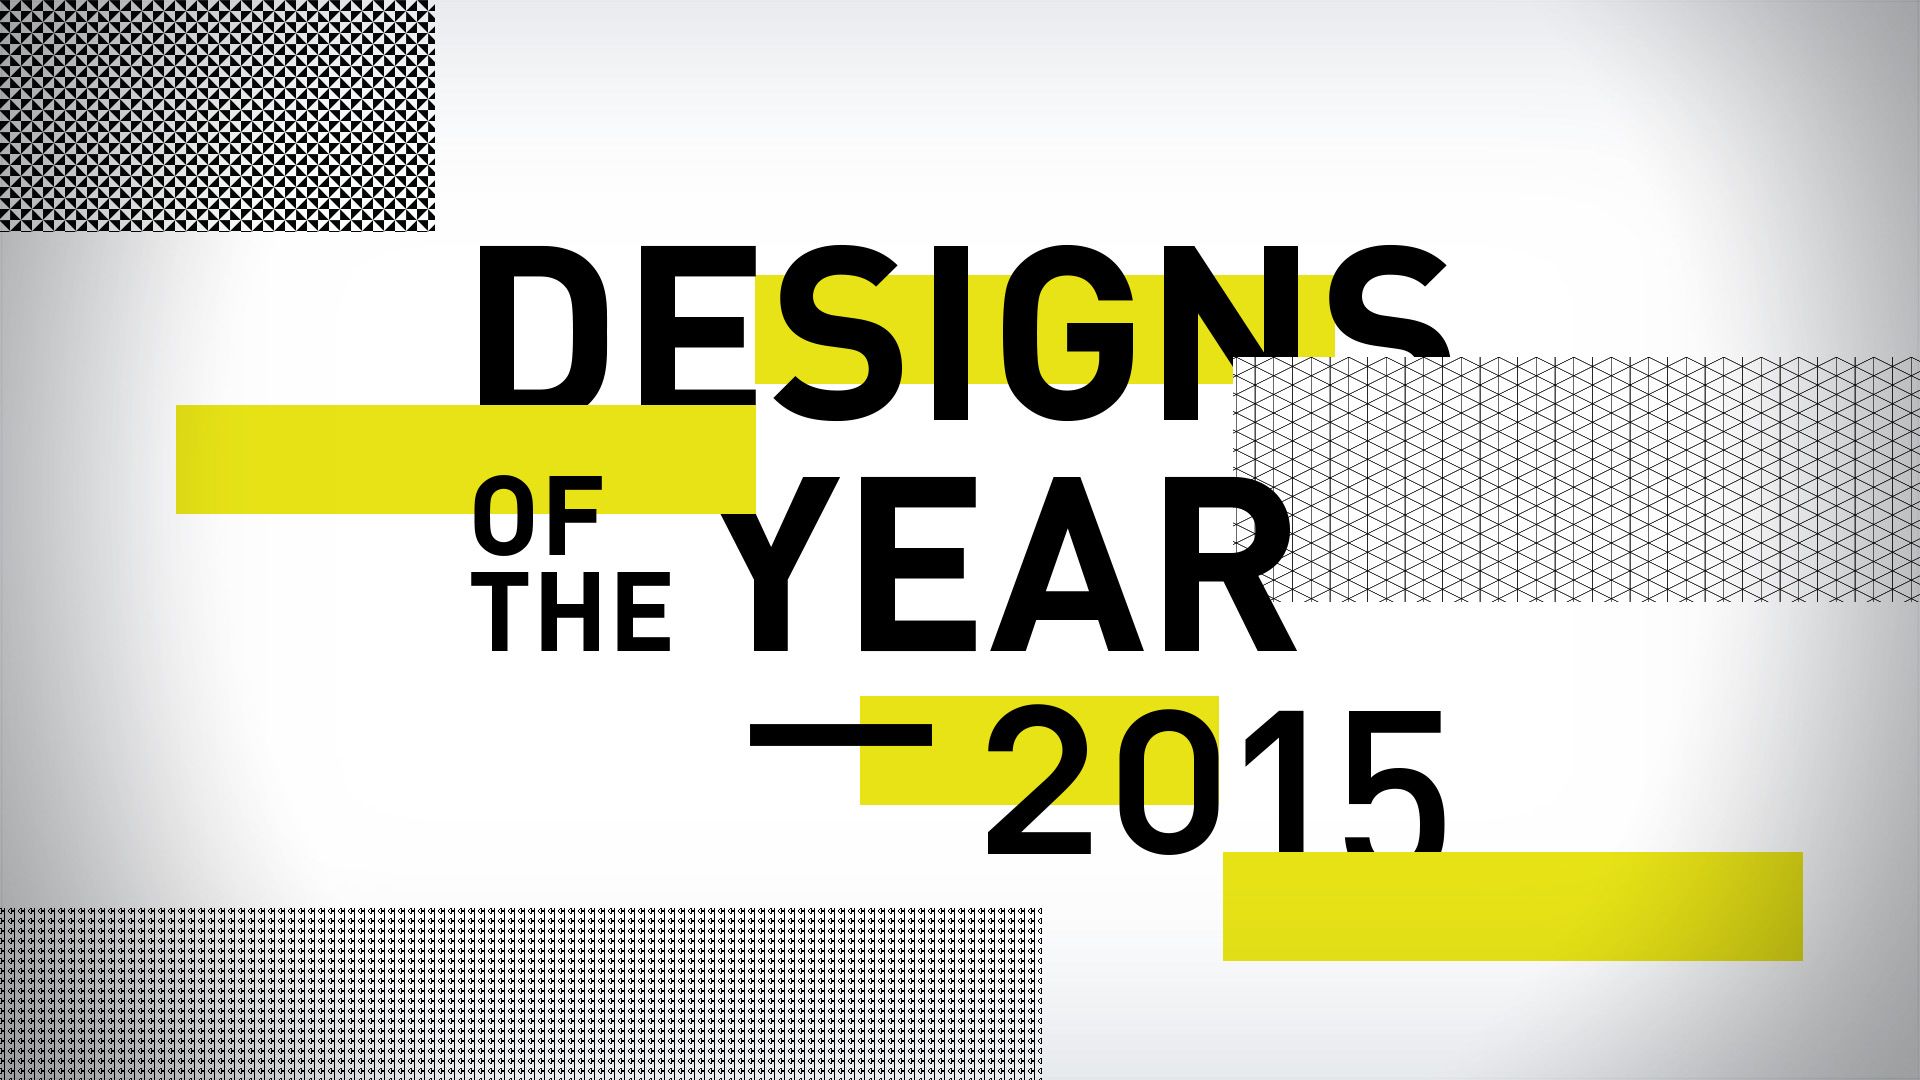 Design Museum | Designs of the Year 2015